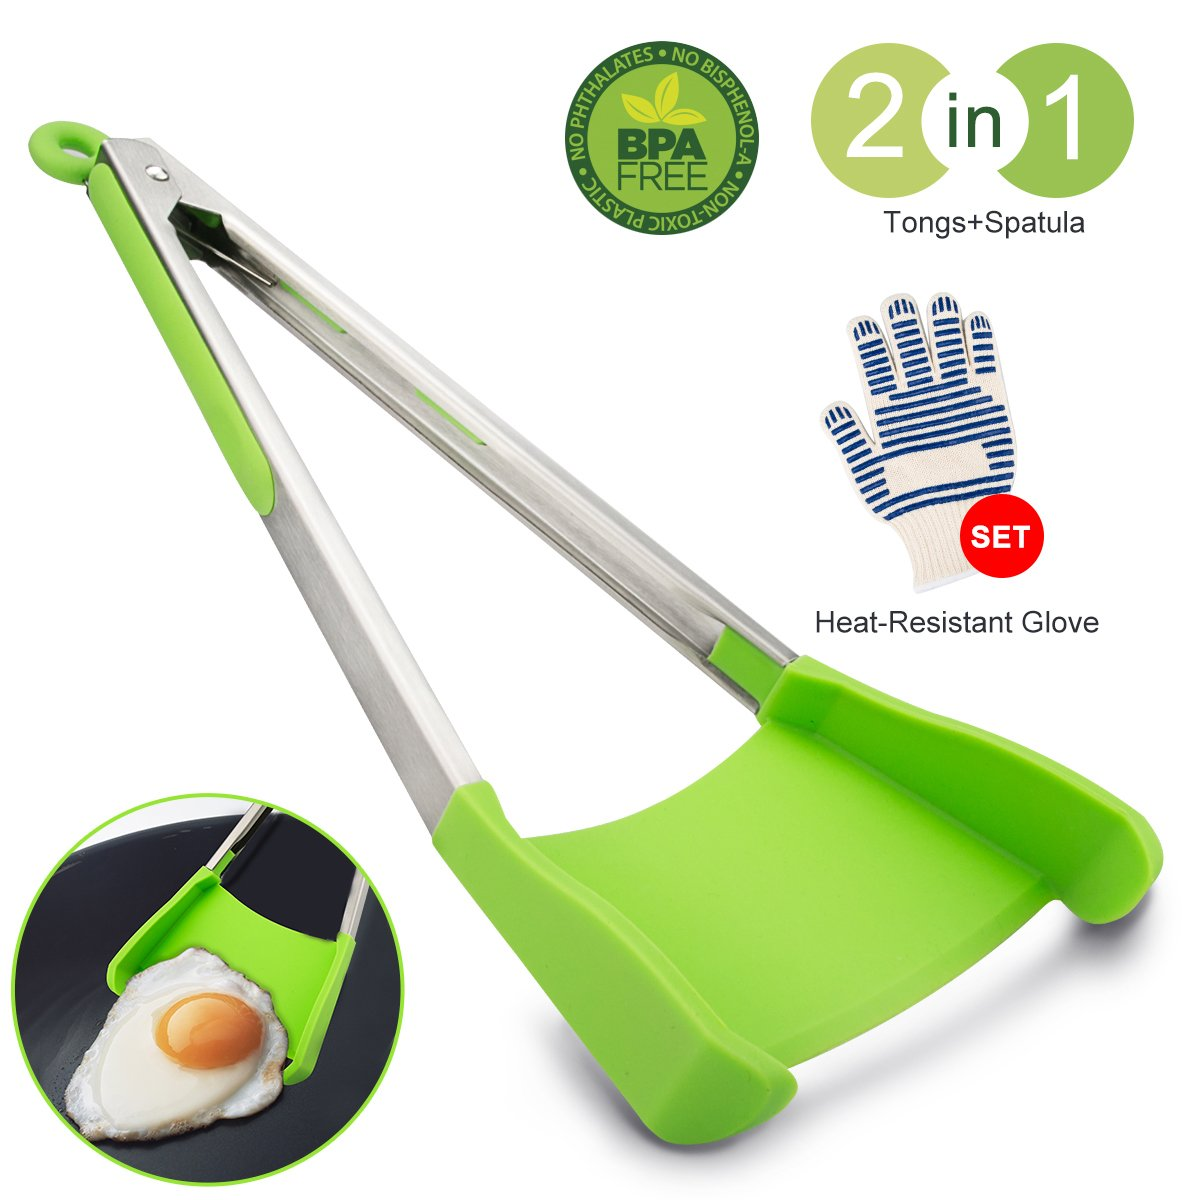 Kitchen Tongs Set of 2, Tongs For Cooking 2 in 1 Spatula Tongs With Silicone Tips Non-stick And Oven Glove For Grill BBQ 12 Inch (1 Tongs & 1 Oven Glove)